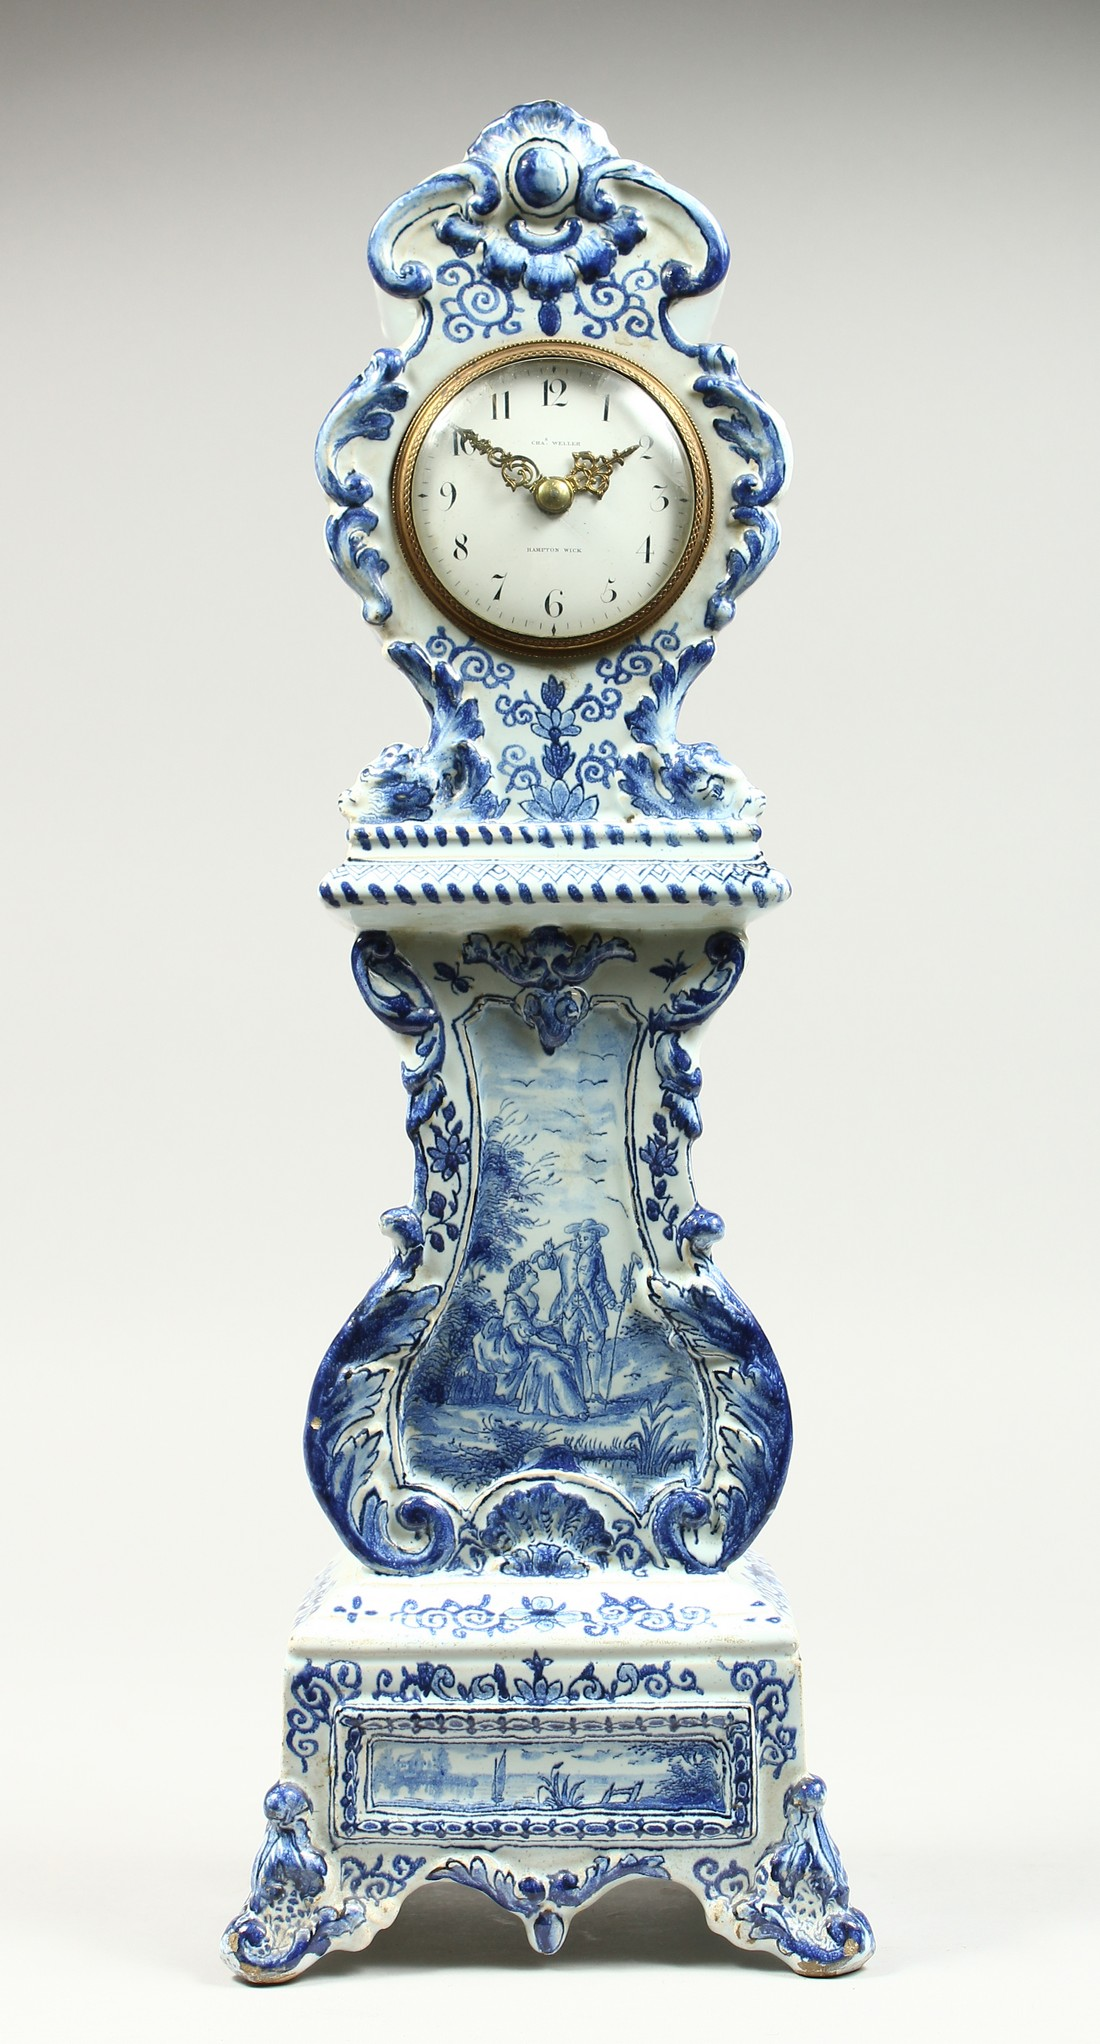 A 19TH CENTURY DUTCH BLUE AND WHITE MINIATURE PORCELAIN LONGCASE CLOCK, the movement by Charles